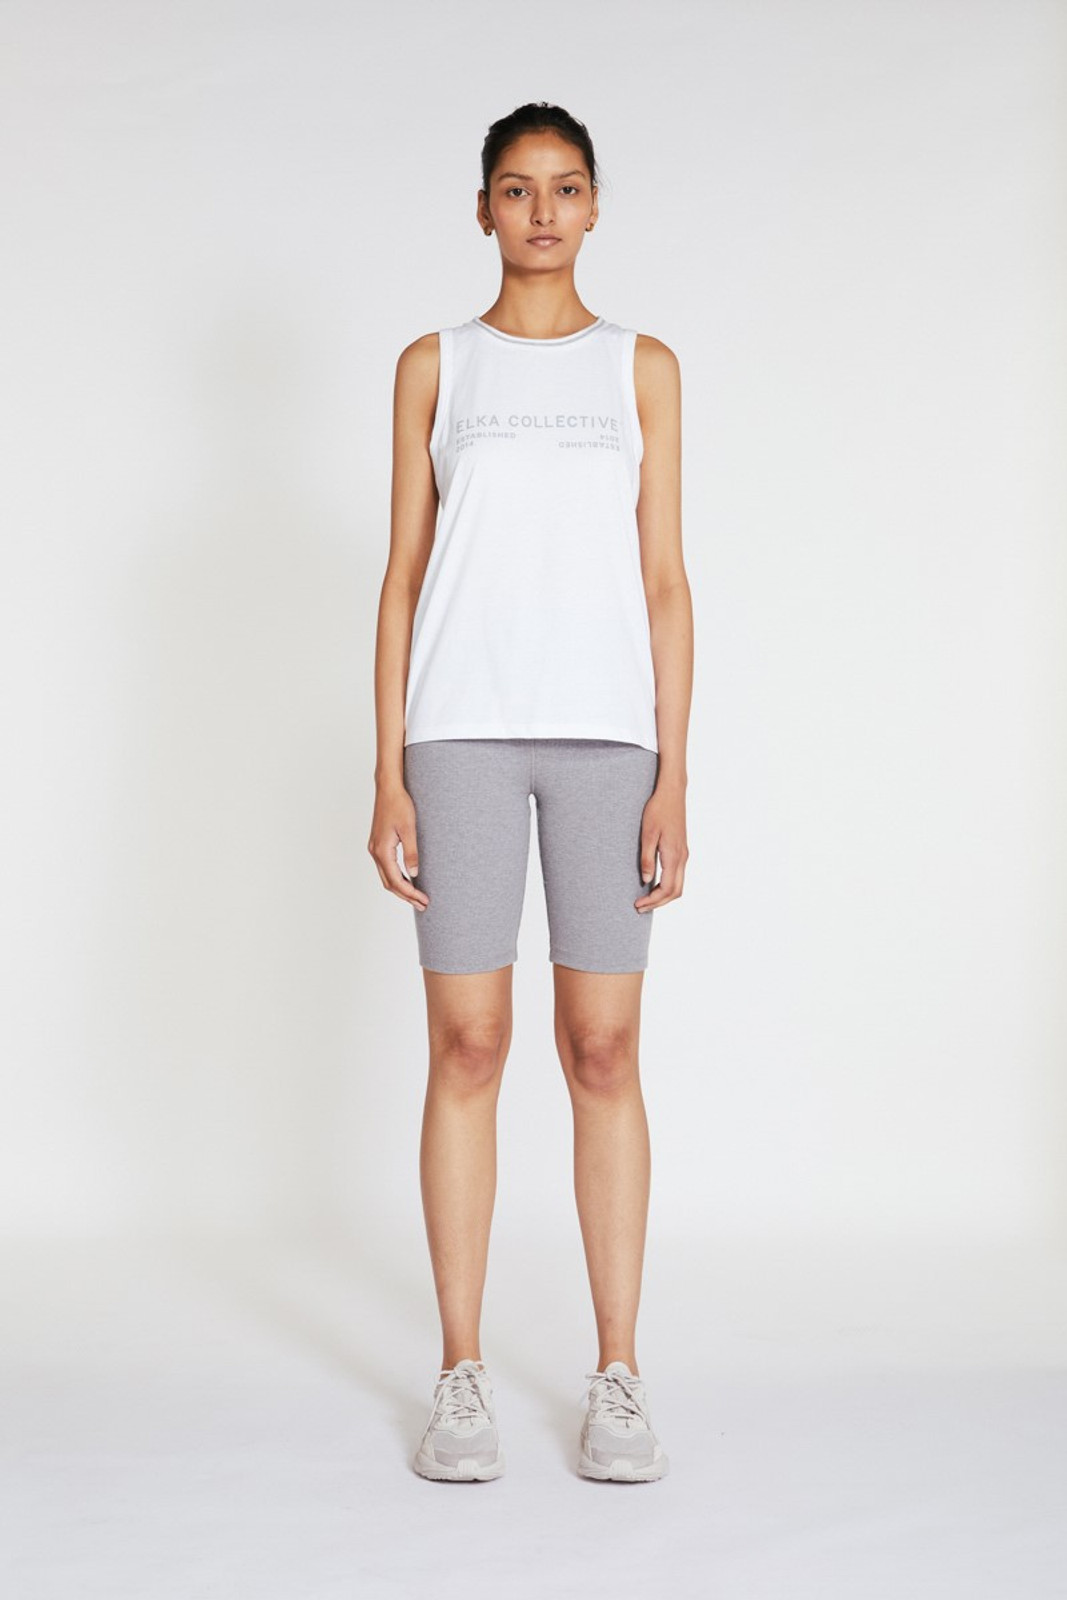 Elka Collective Racer Tank White  2